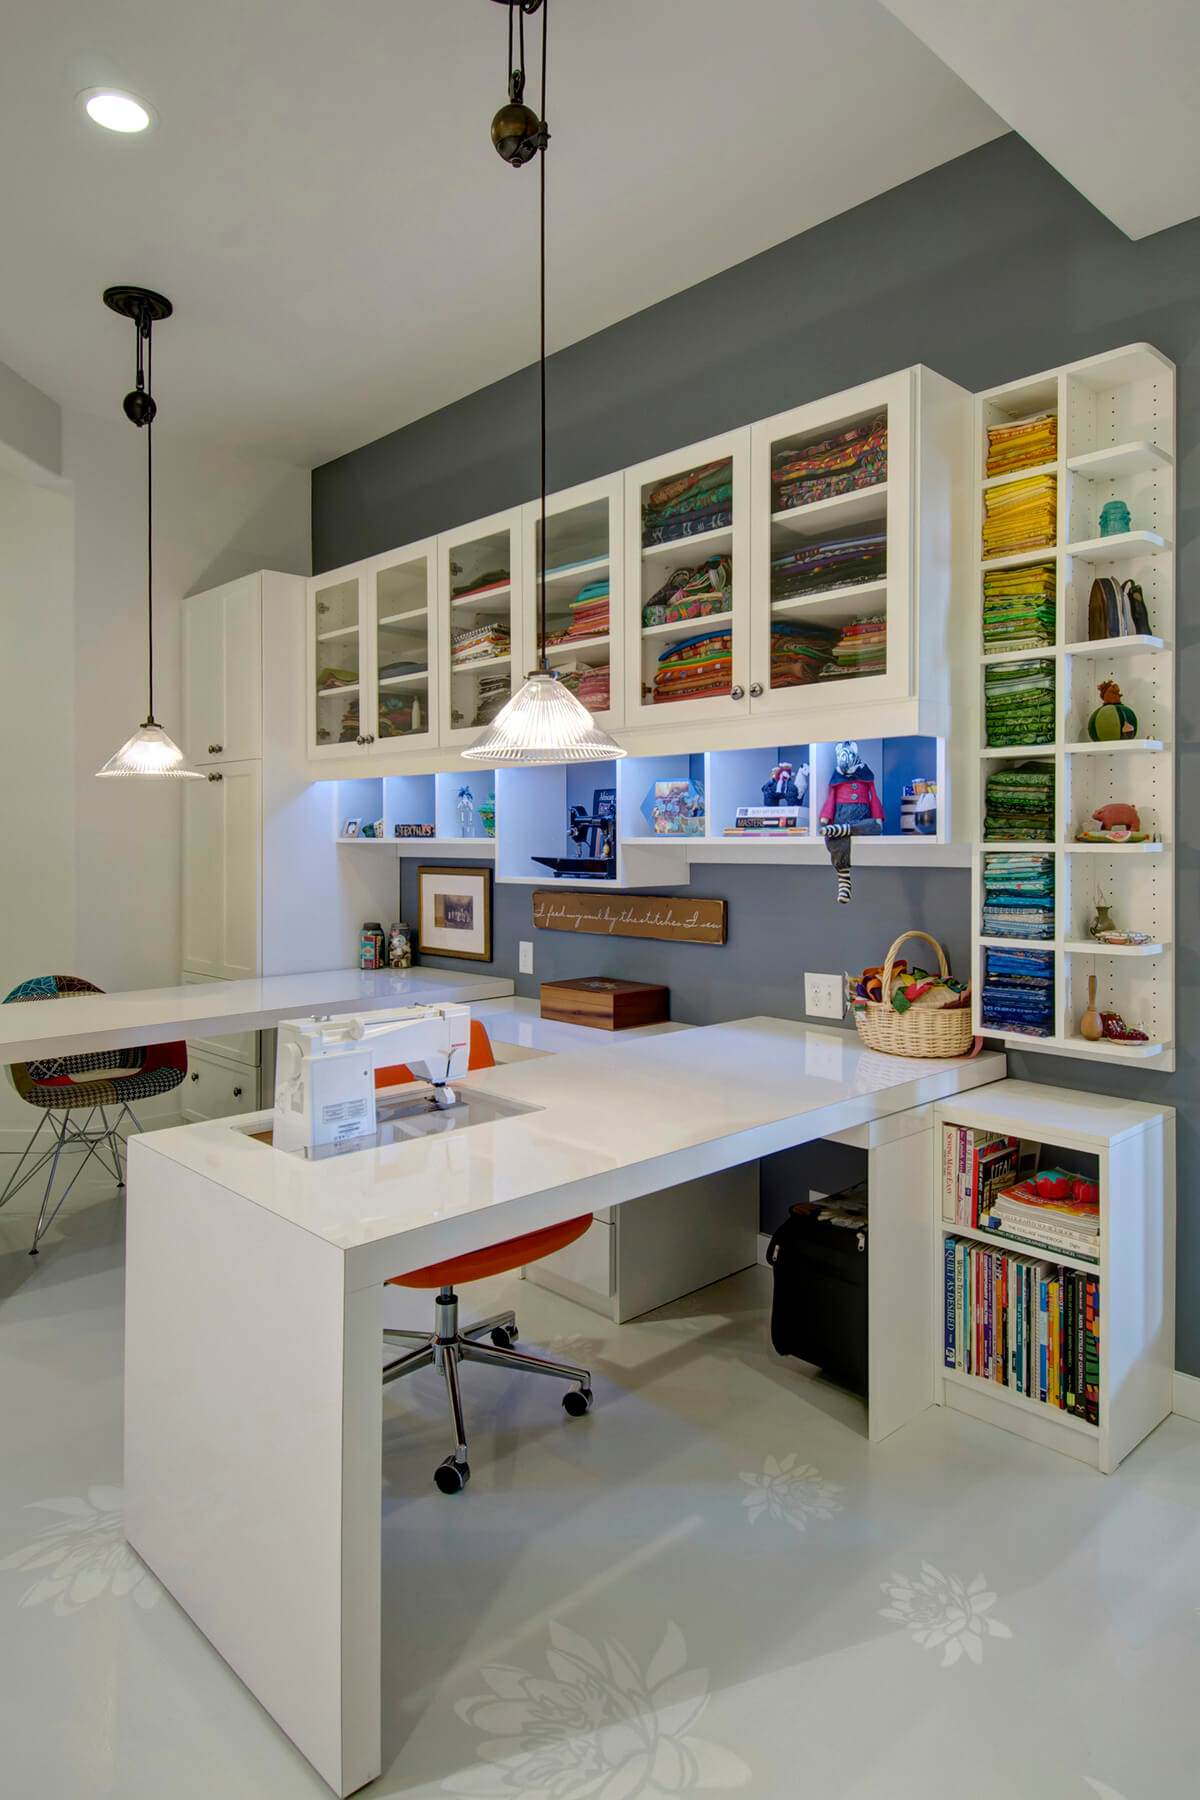 23 craft room design ideas creative rooms for House plans with craft room